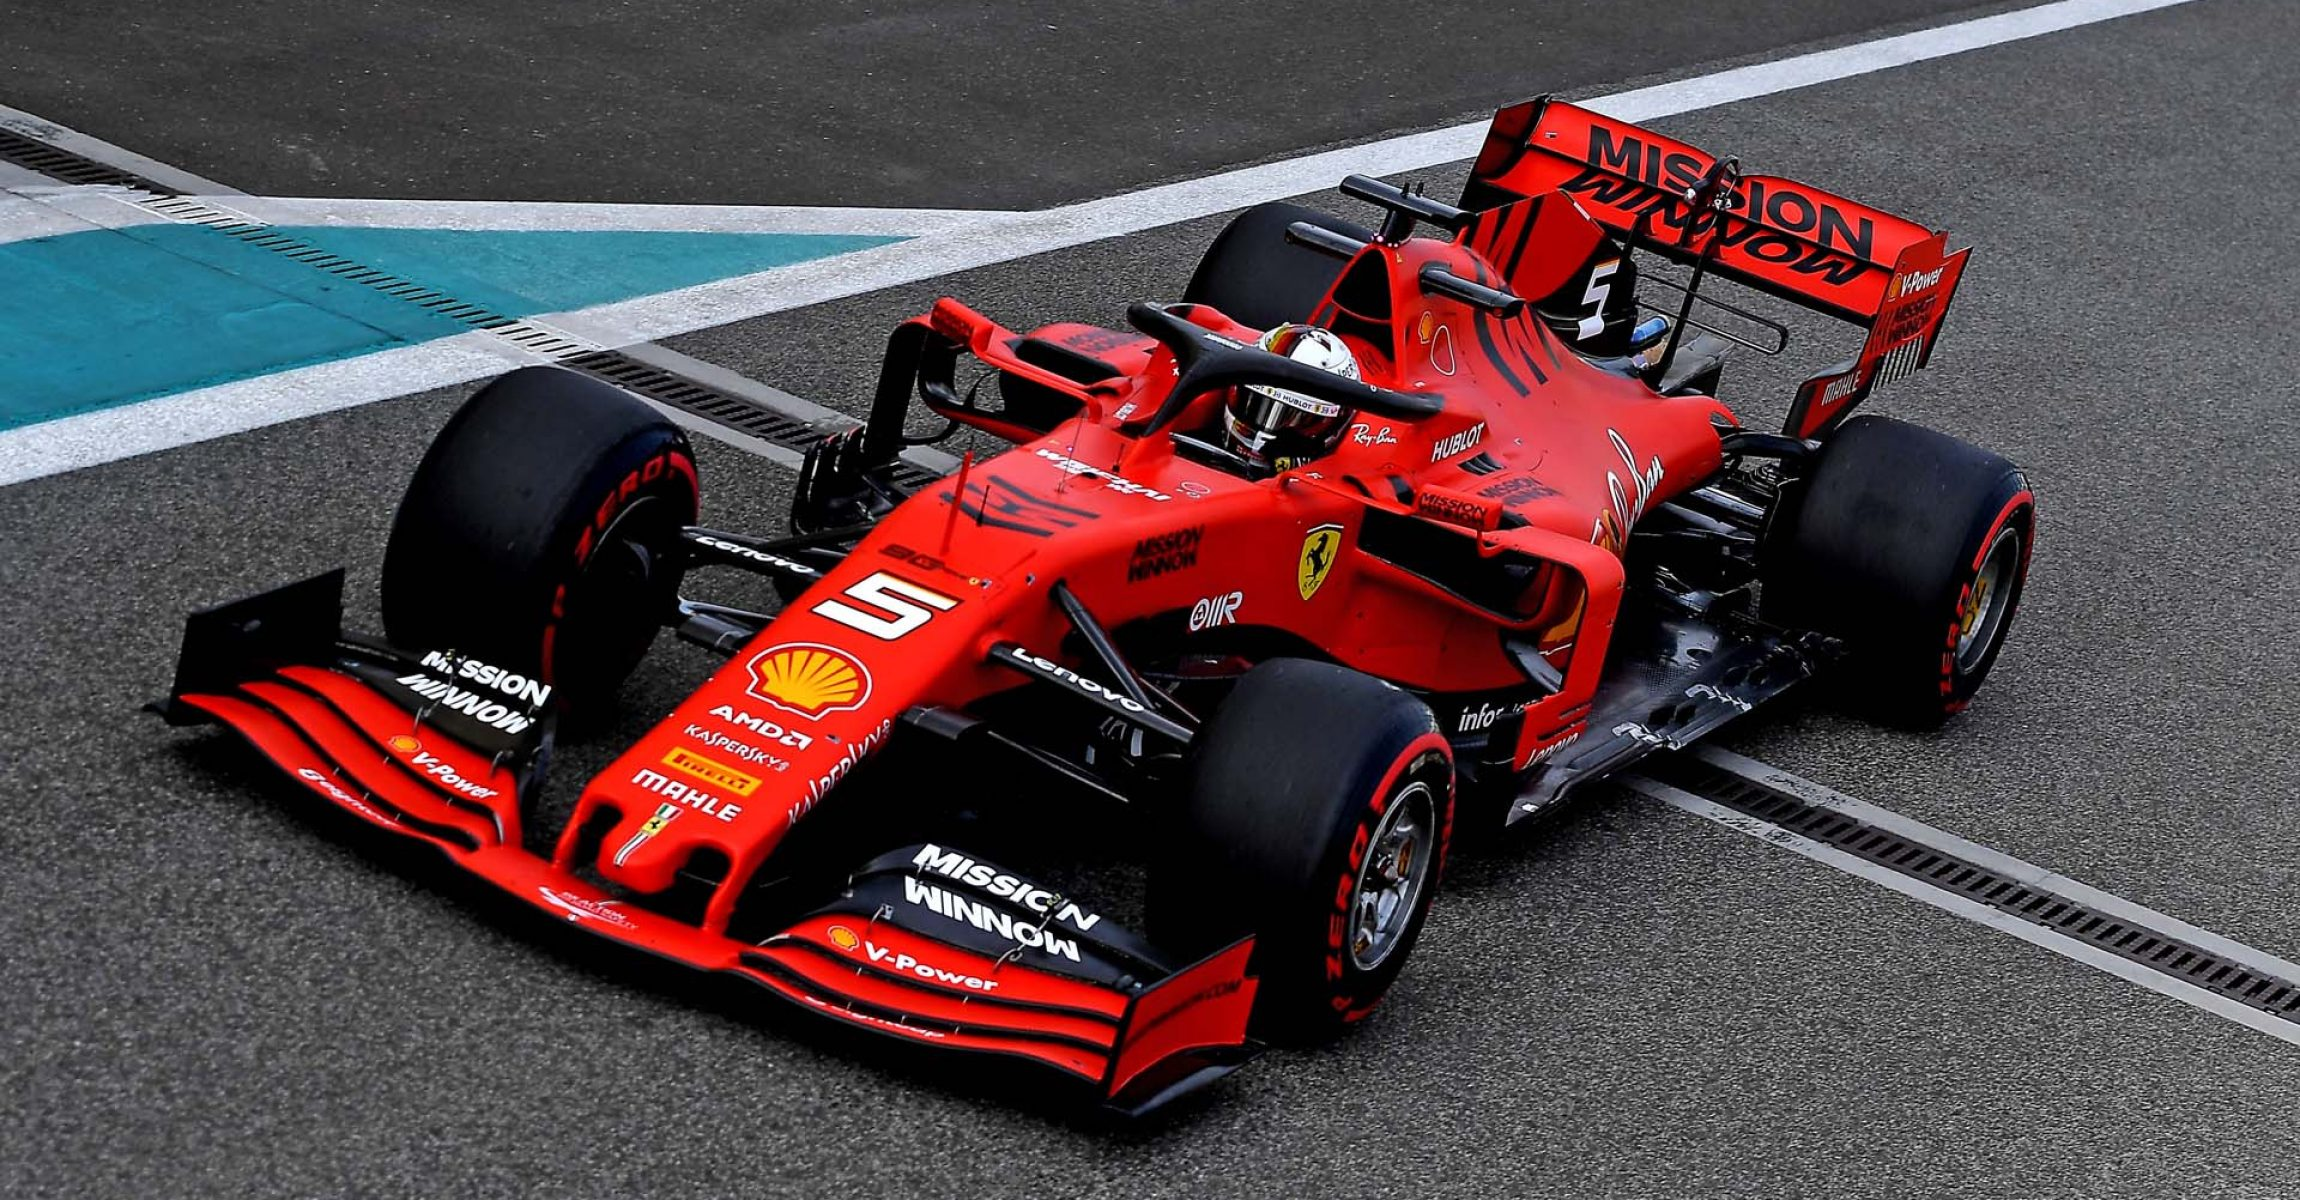 TEST T5 ABU DHABI 2019 - MARTEDÌ 03/12/2019   credit: @Scuderia Ferrari Press Office Sebastian Vettel